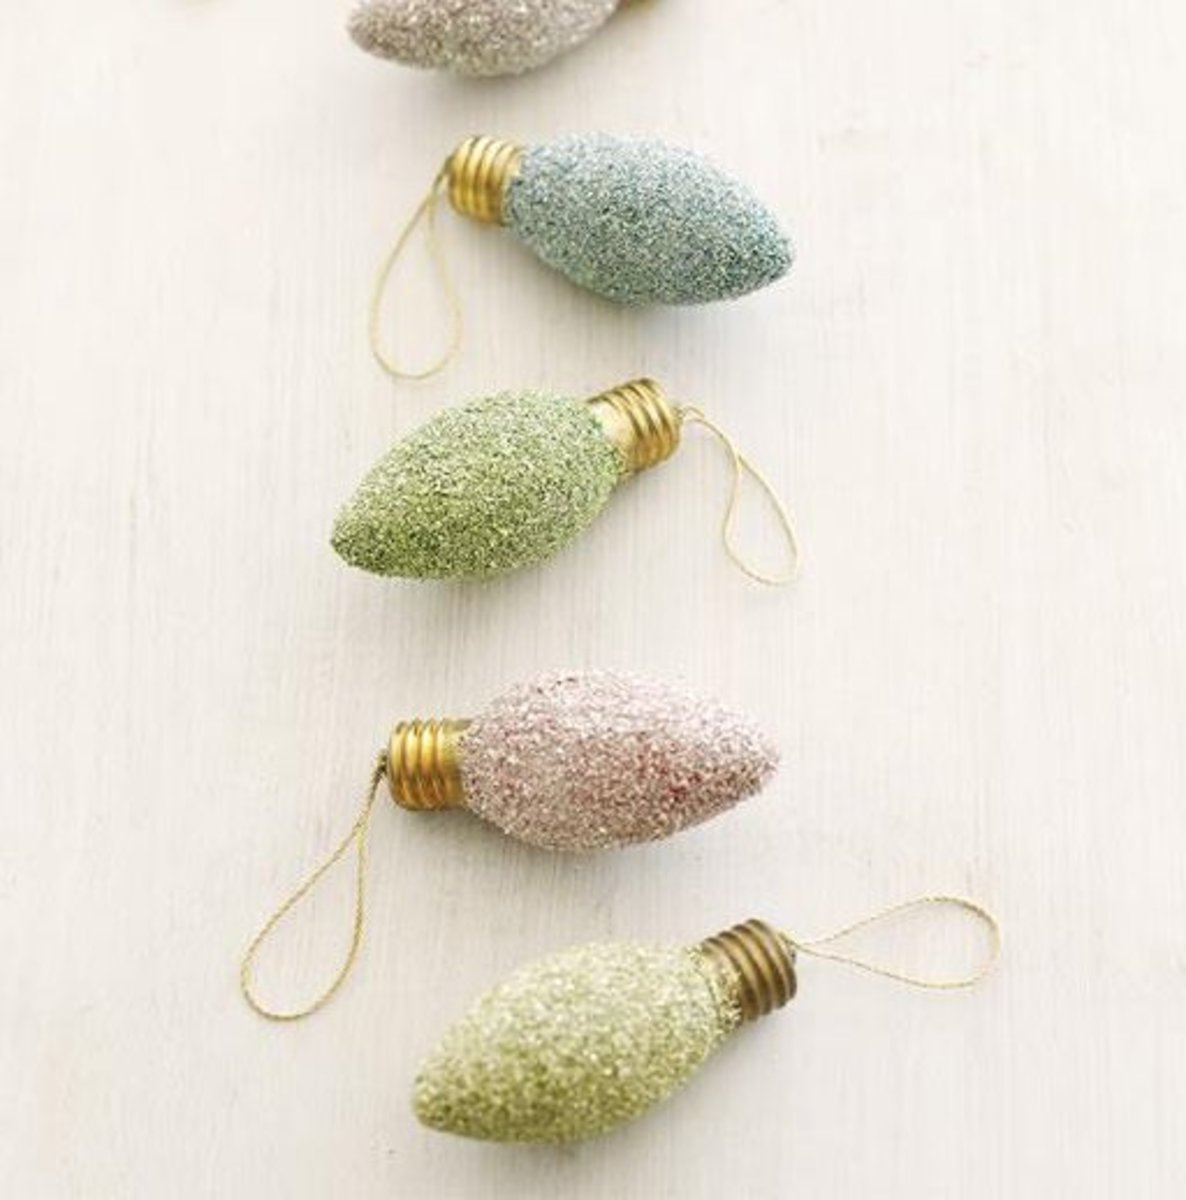 Don't throw away those old lightbulbs. Instead, turn them into pretty Christmas ornaments.